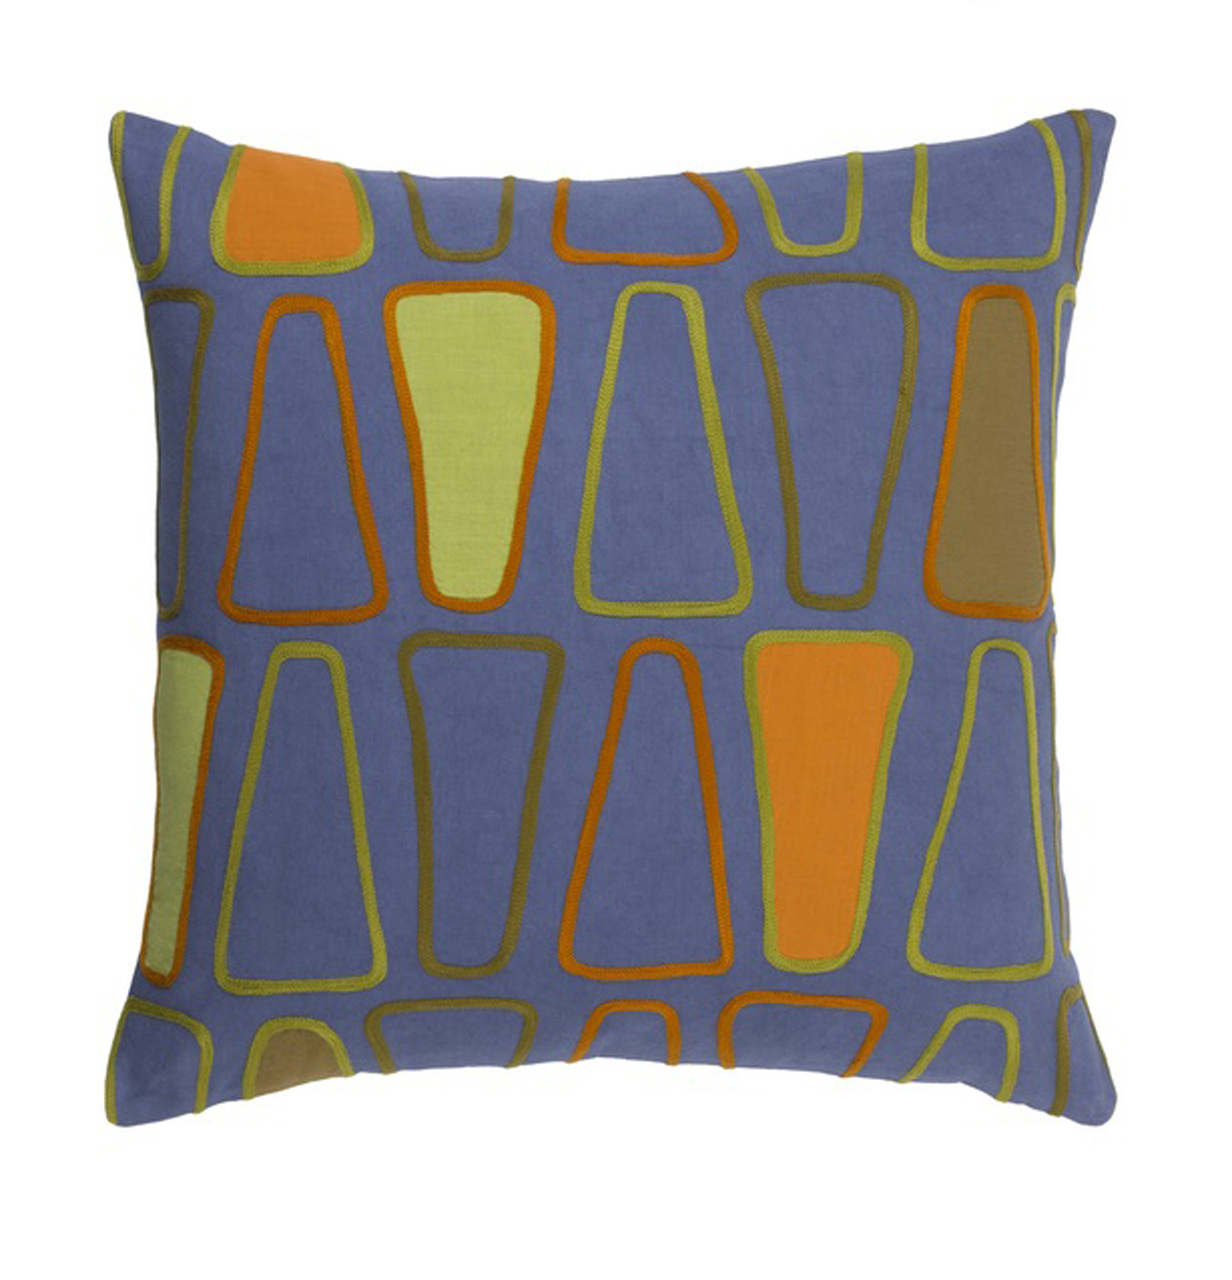 Blue Down Throw Pillows : 20? Indigo Blue, Golden Orange & Olive Drab Green Woven Decorative Throw Pillow-Down Filler ...